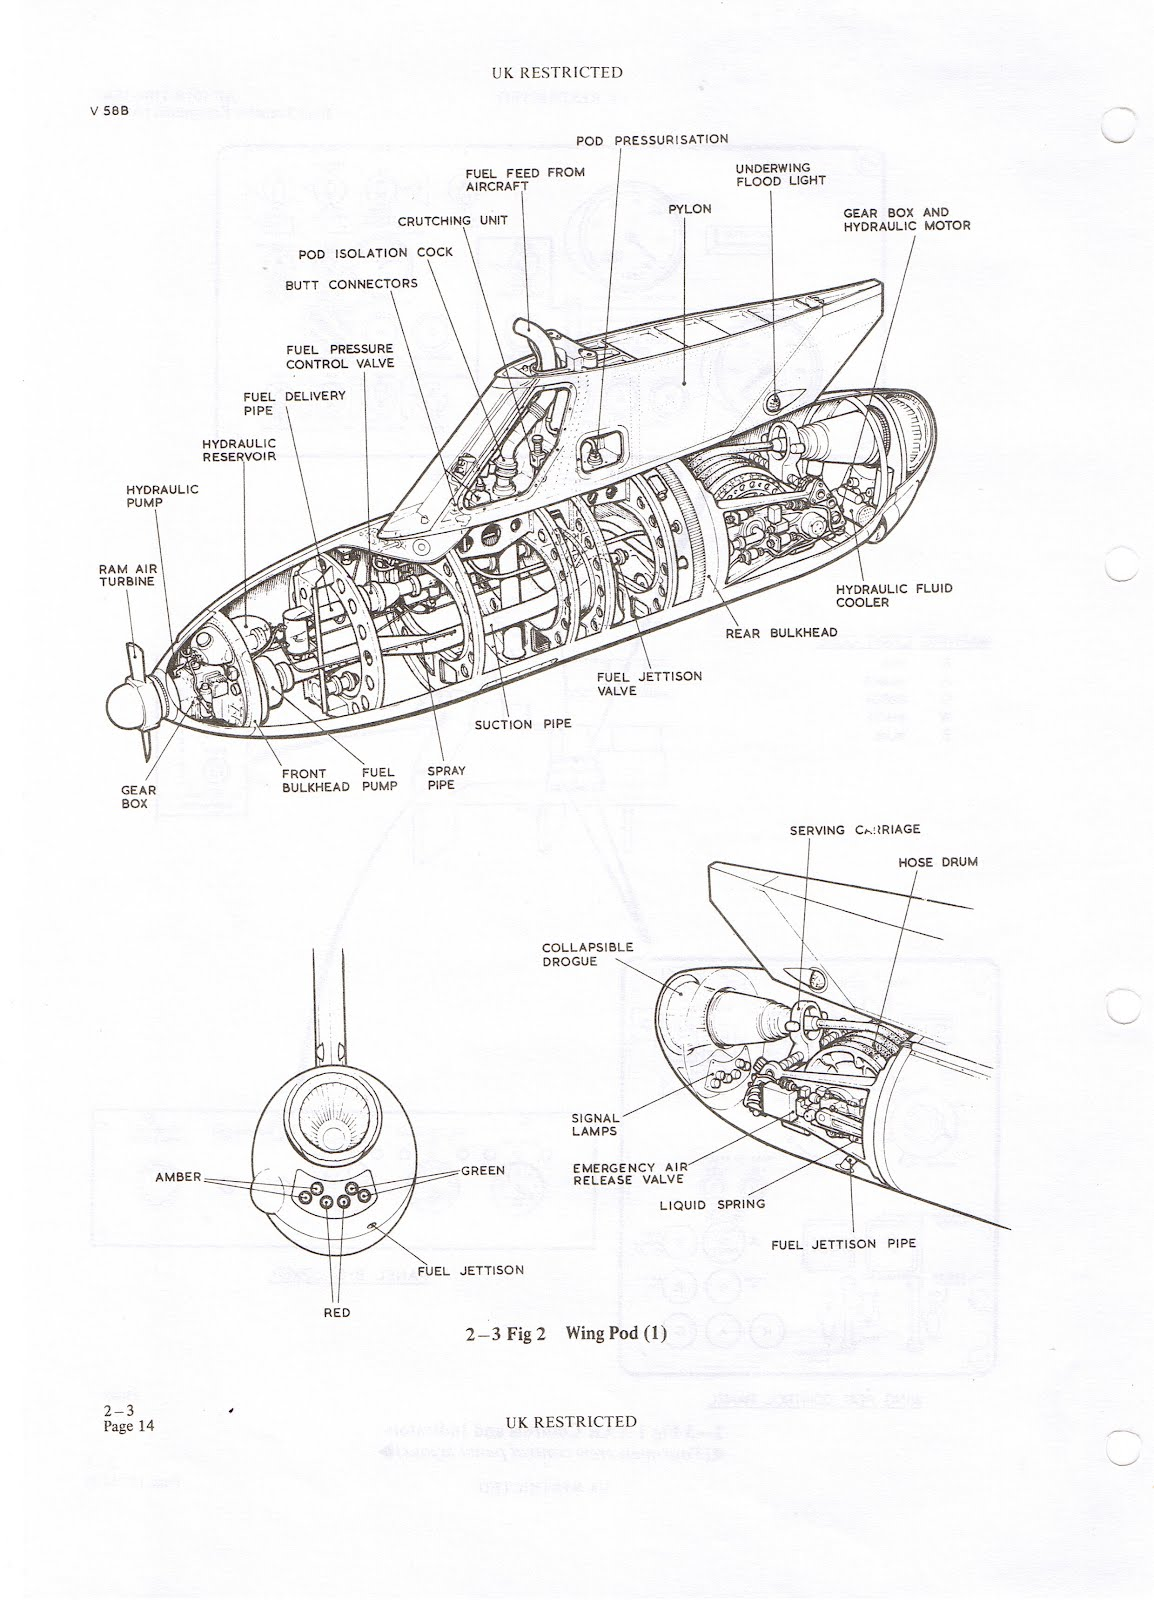 Victor Xl231 Lusty Lindy In Flight Refueling Harrier Engine Diagram Mk20b Pod